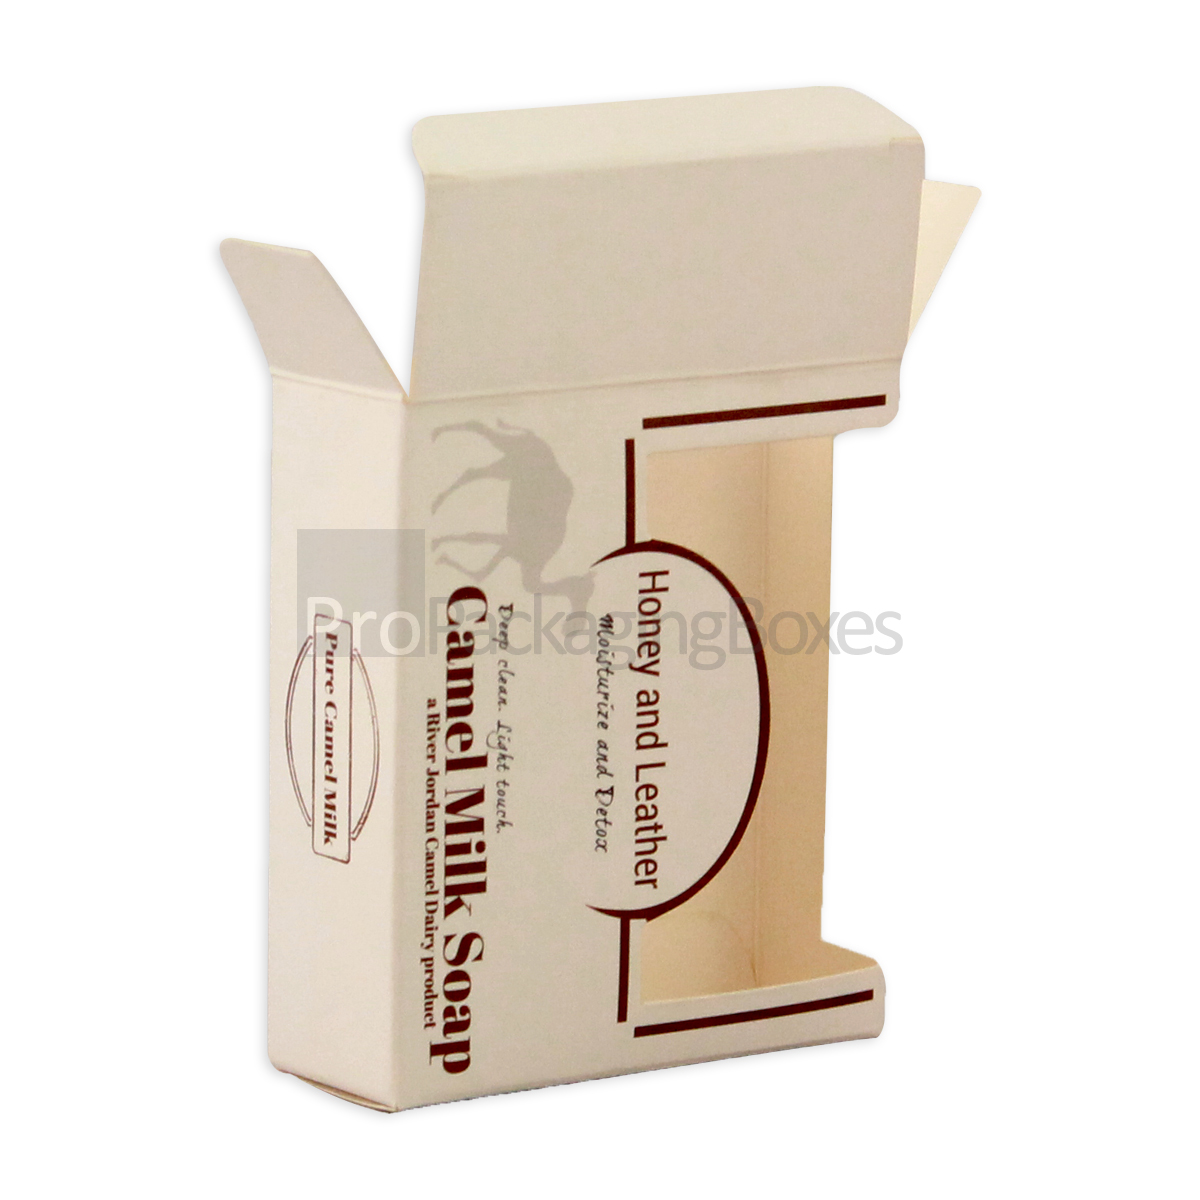 Custom Printed Soap Packaging Boxes in cardboard stock